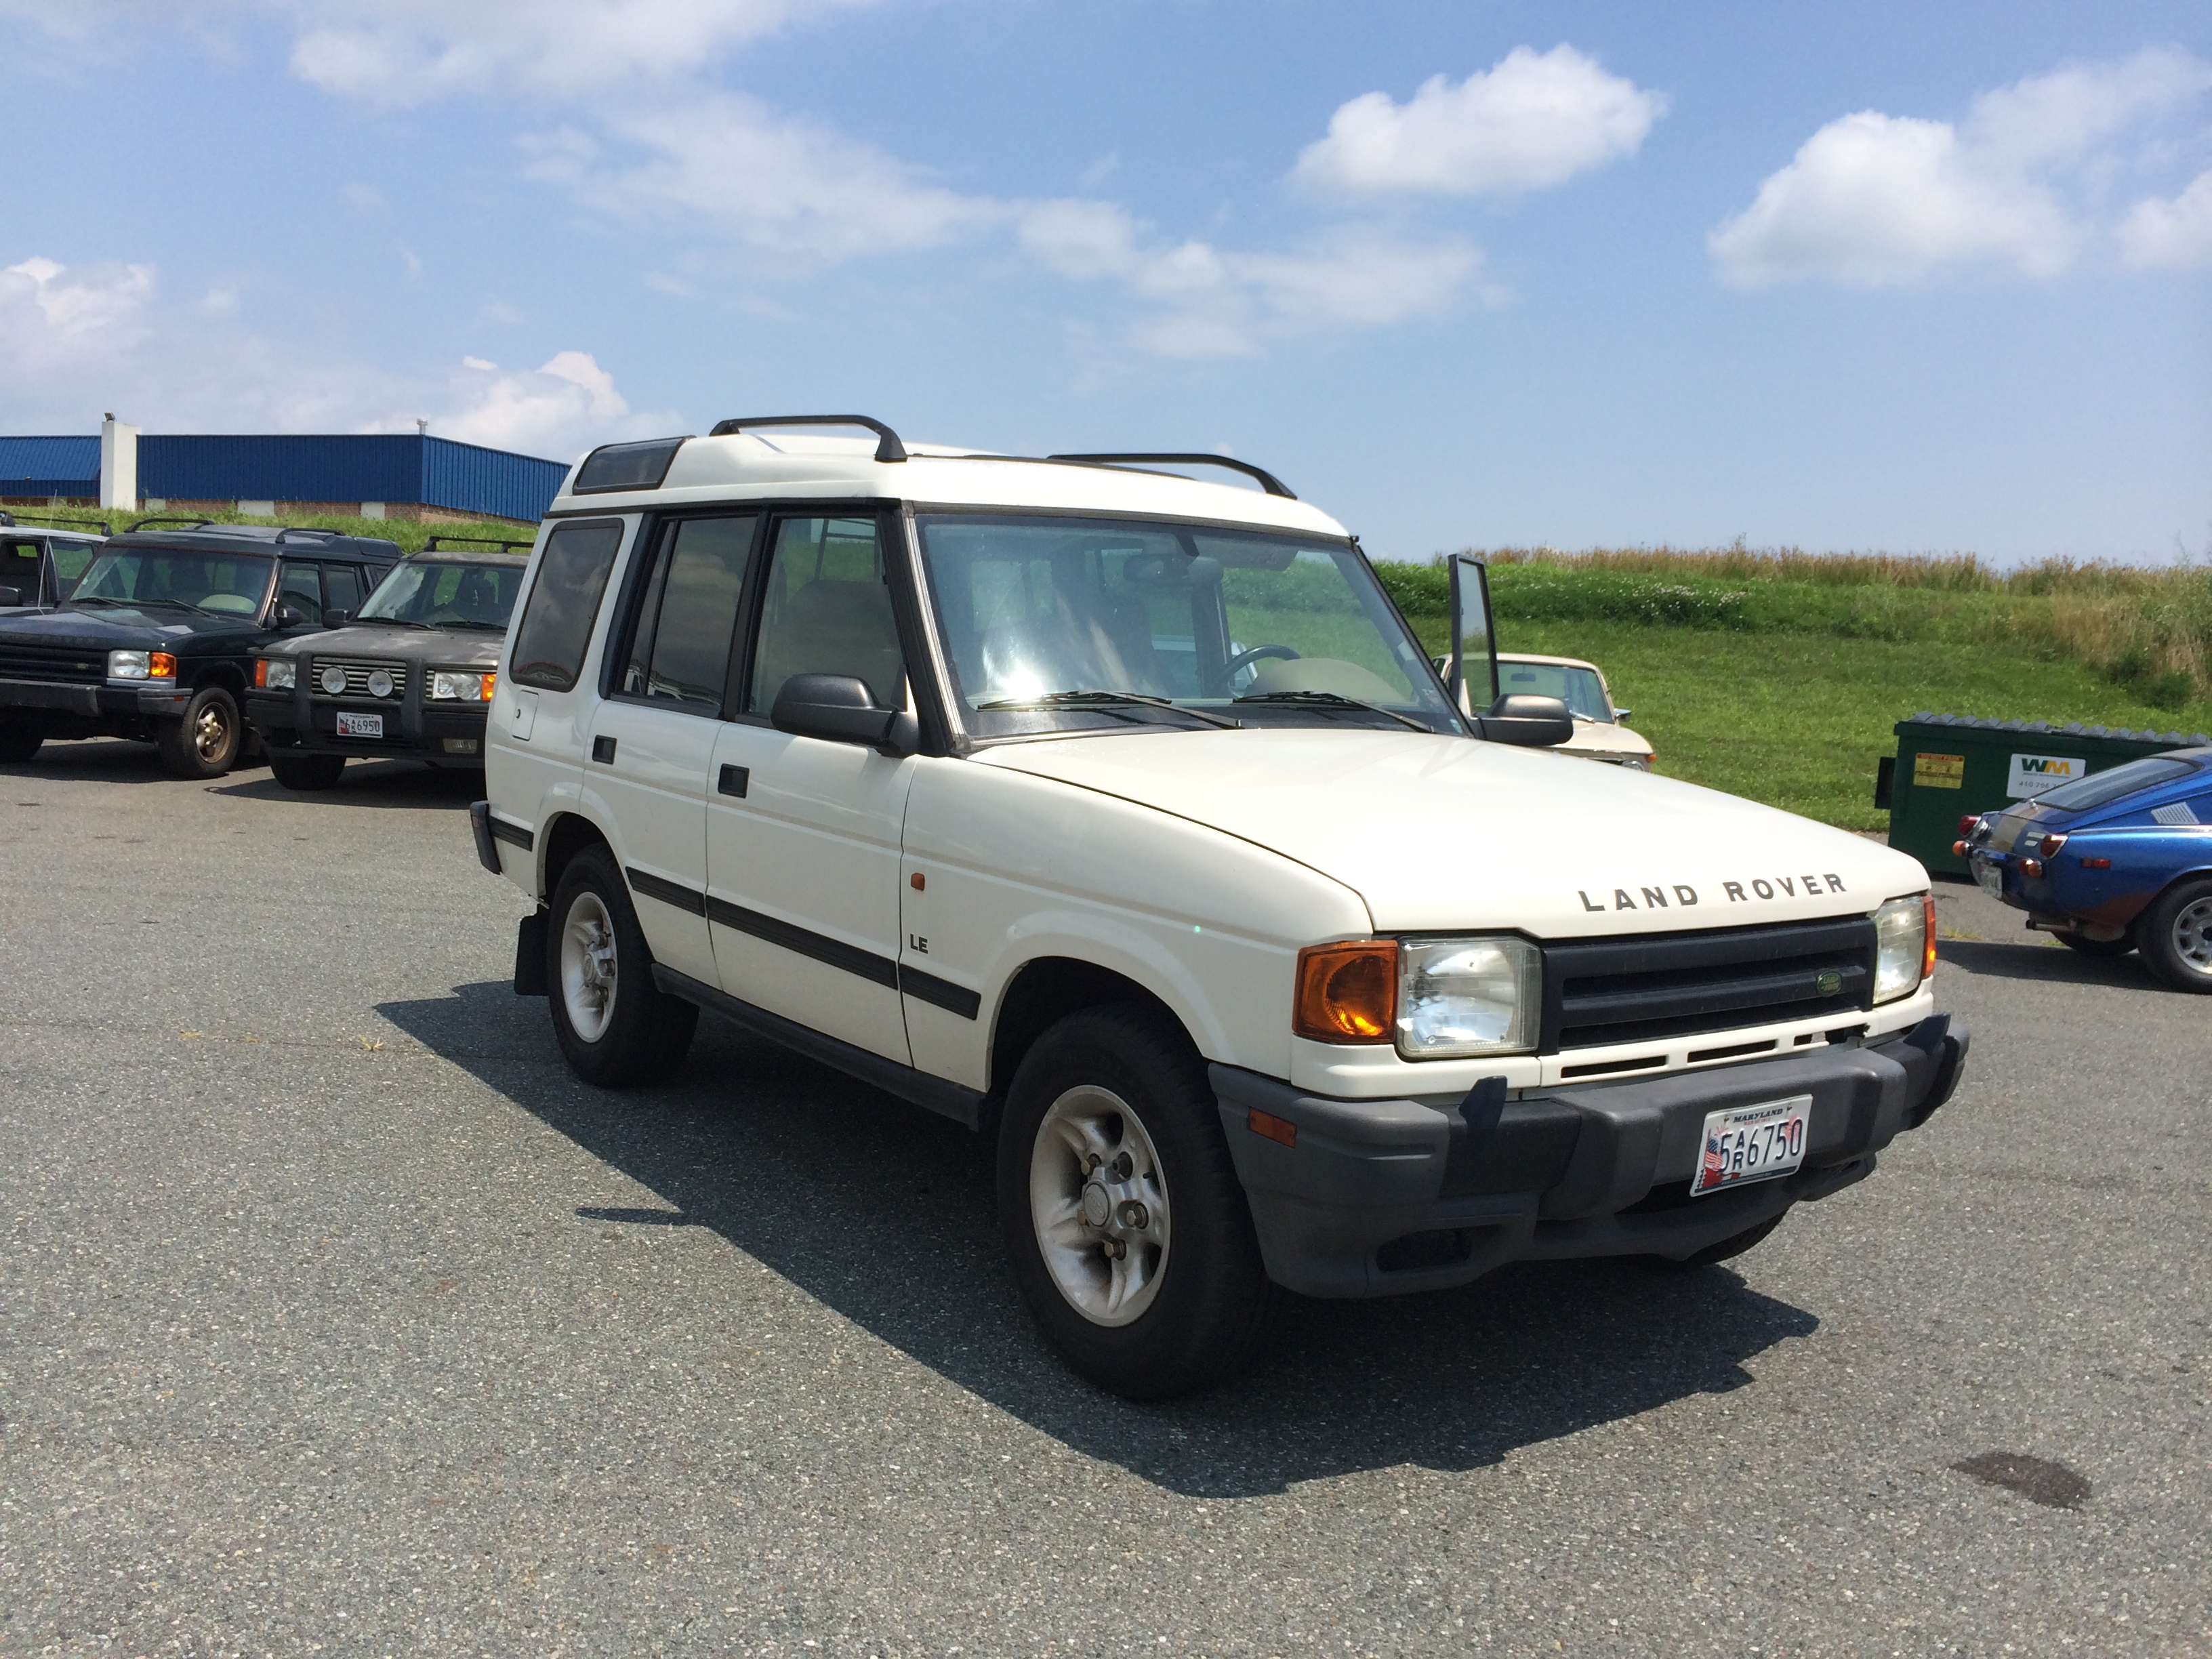 1998 land rover discovery for sale raspis british imports. Black Bedroom Furniture Sets. Home Design Ideas